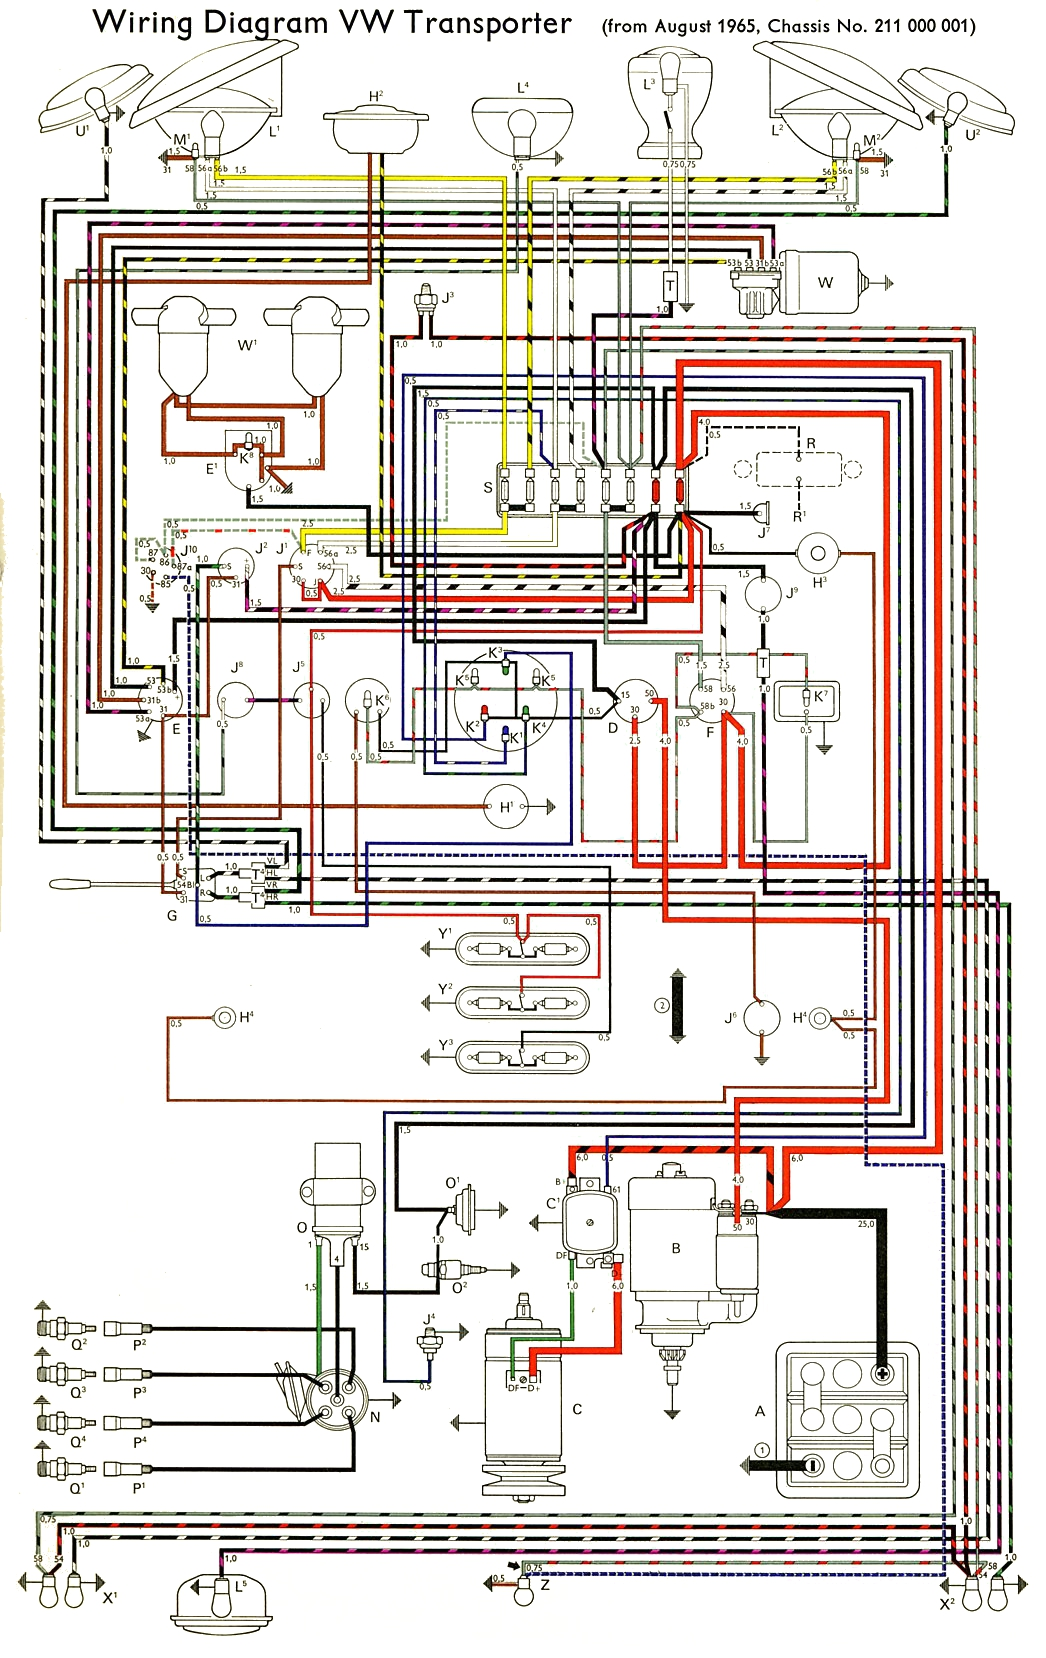 bus_66 electrical wiring diagrams beetle 1971 electrical wiring 76 vw beetle wiring diagram at edmiracle.co